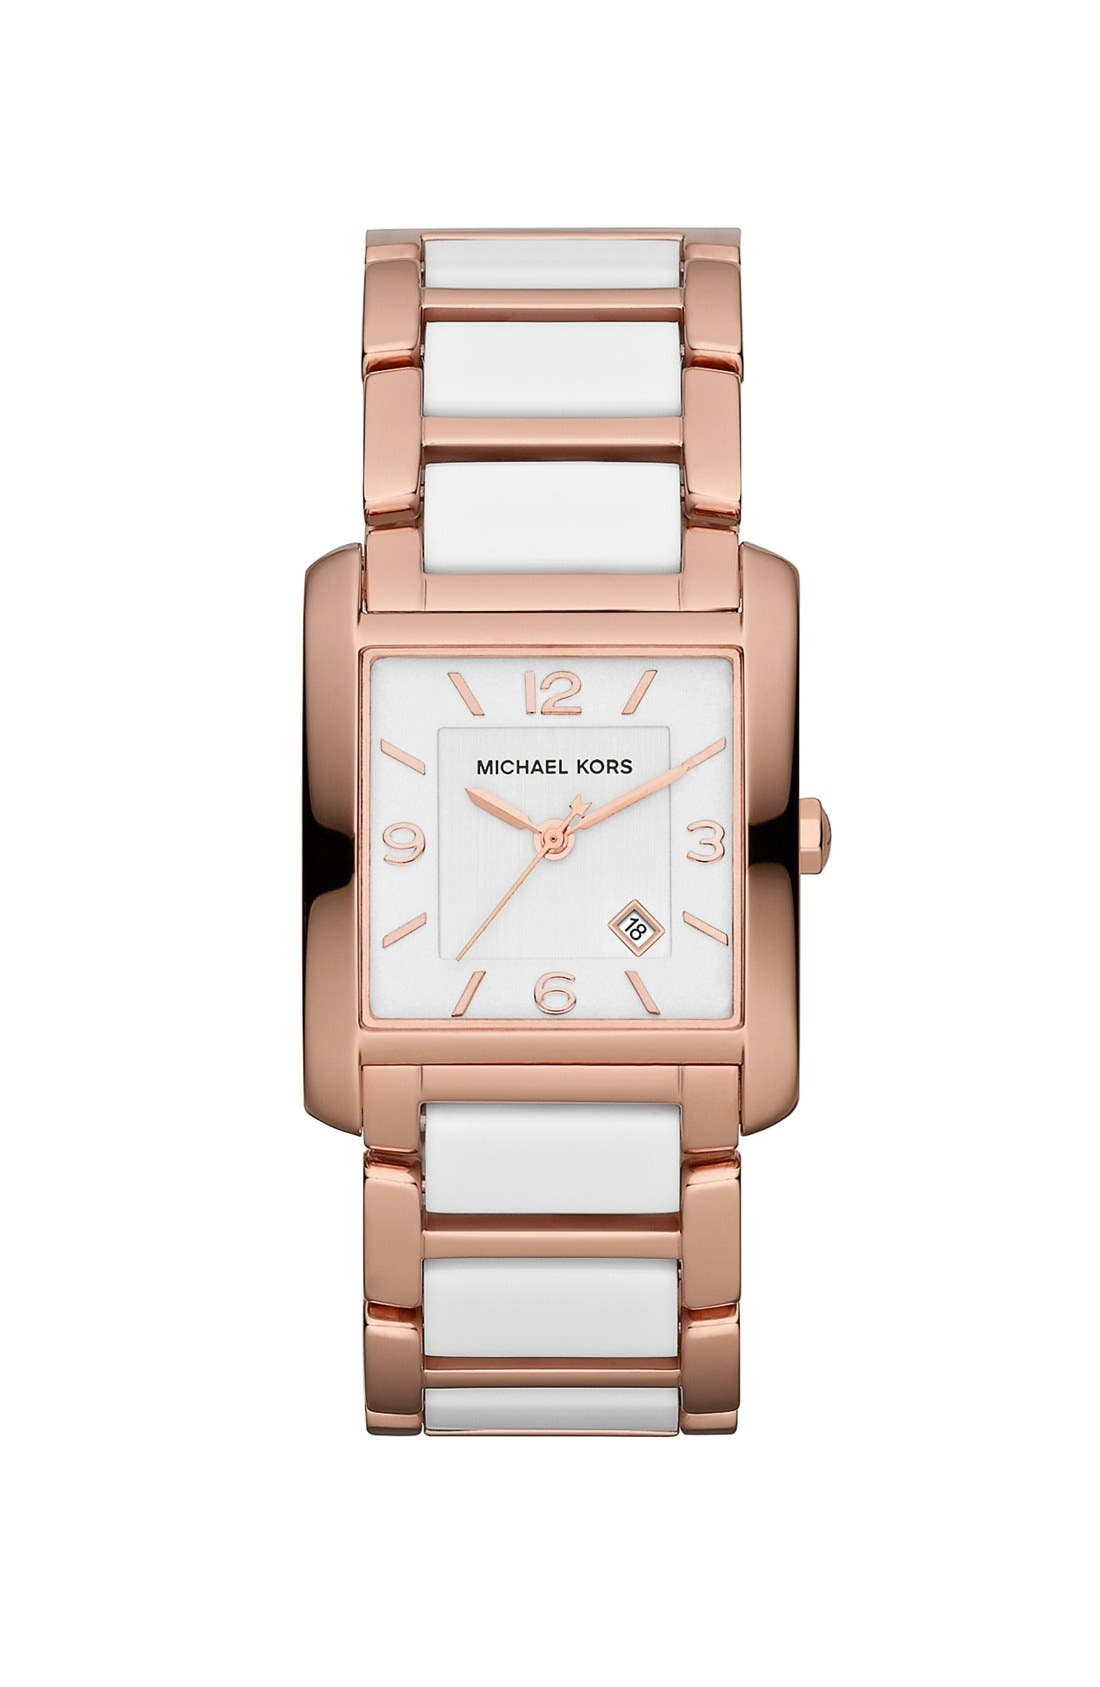 Main Image - Michael Kors 'Frenchy' Rectangular Bracelet Watch, 26mm x 29mm